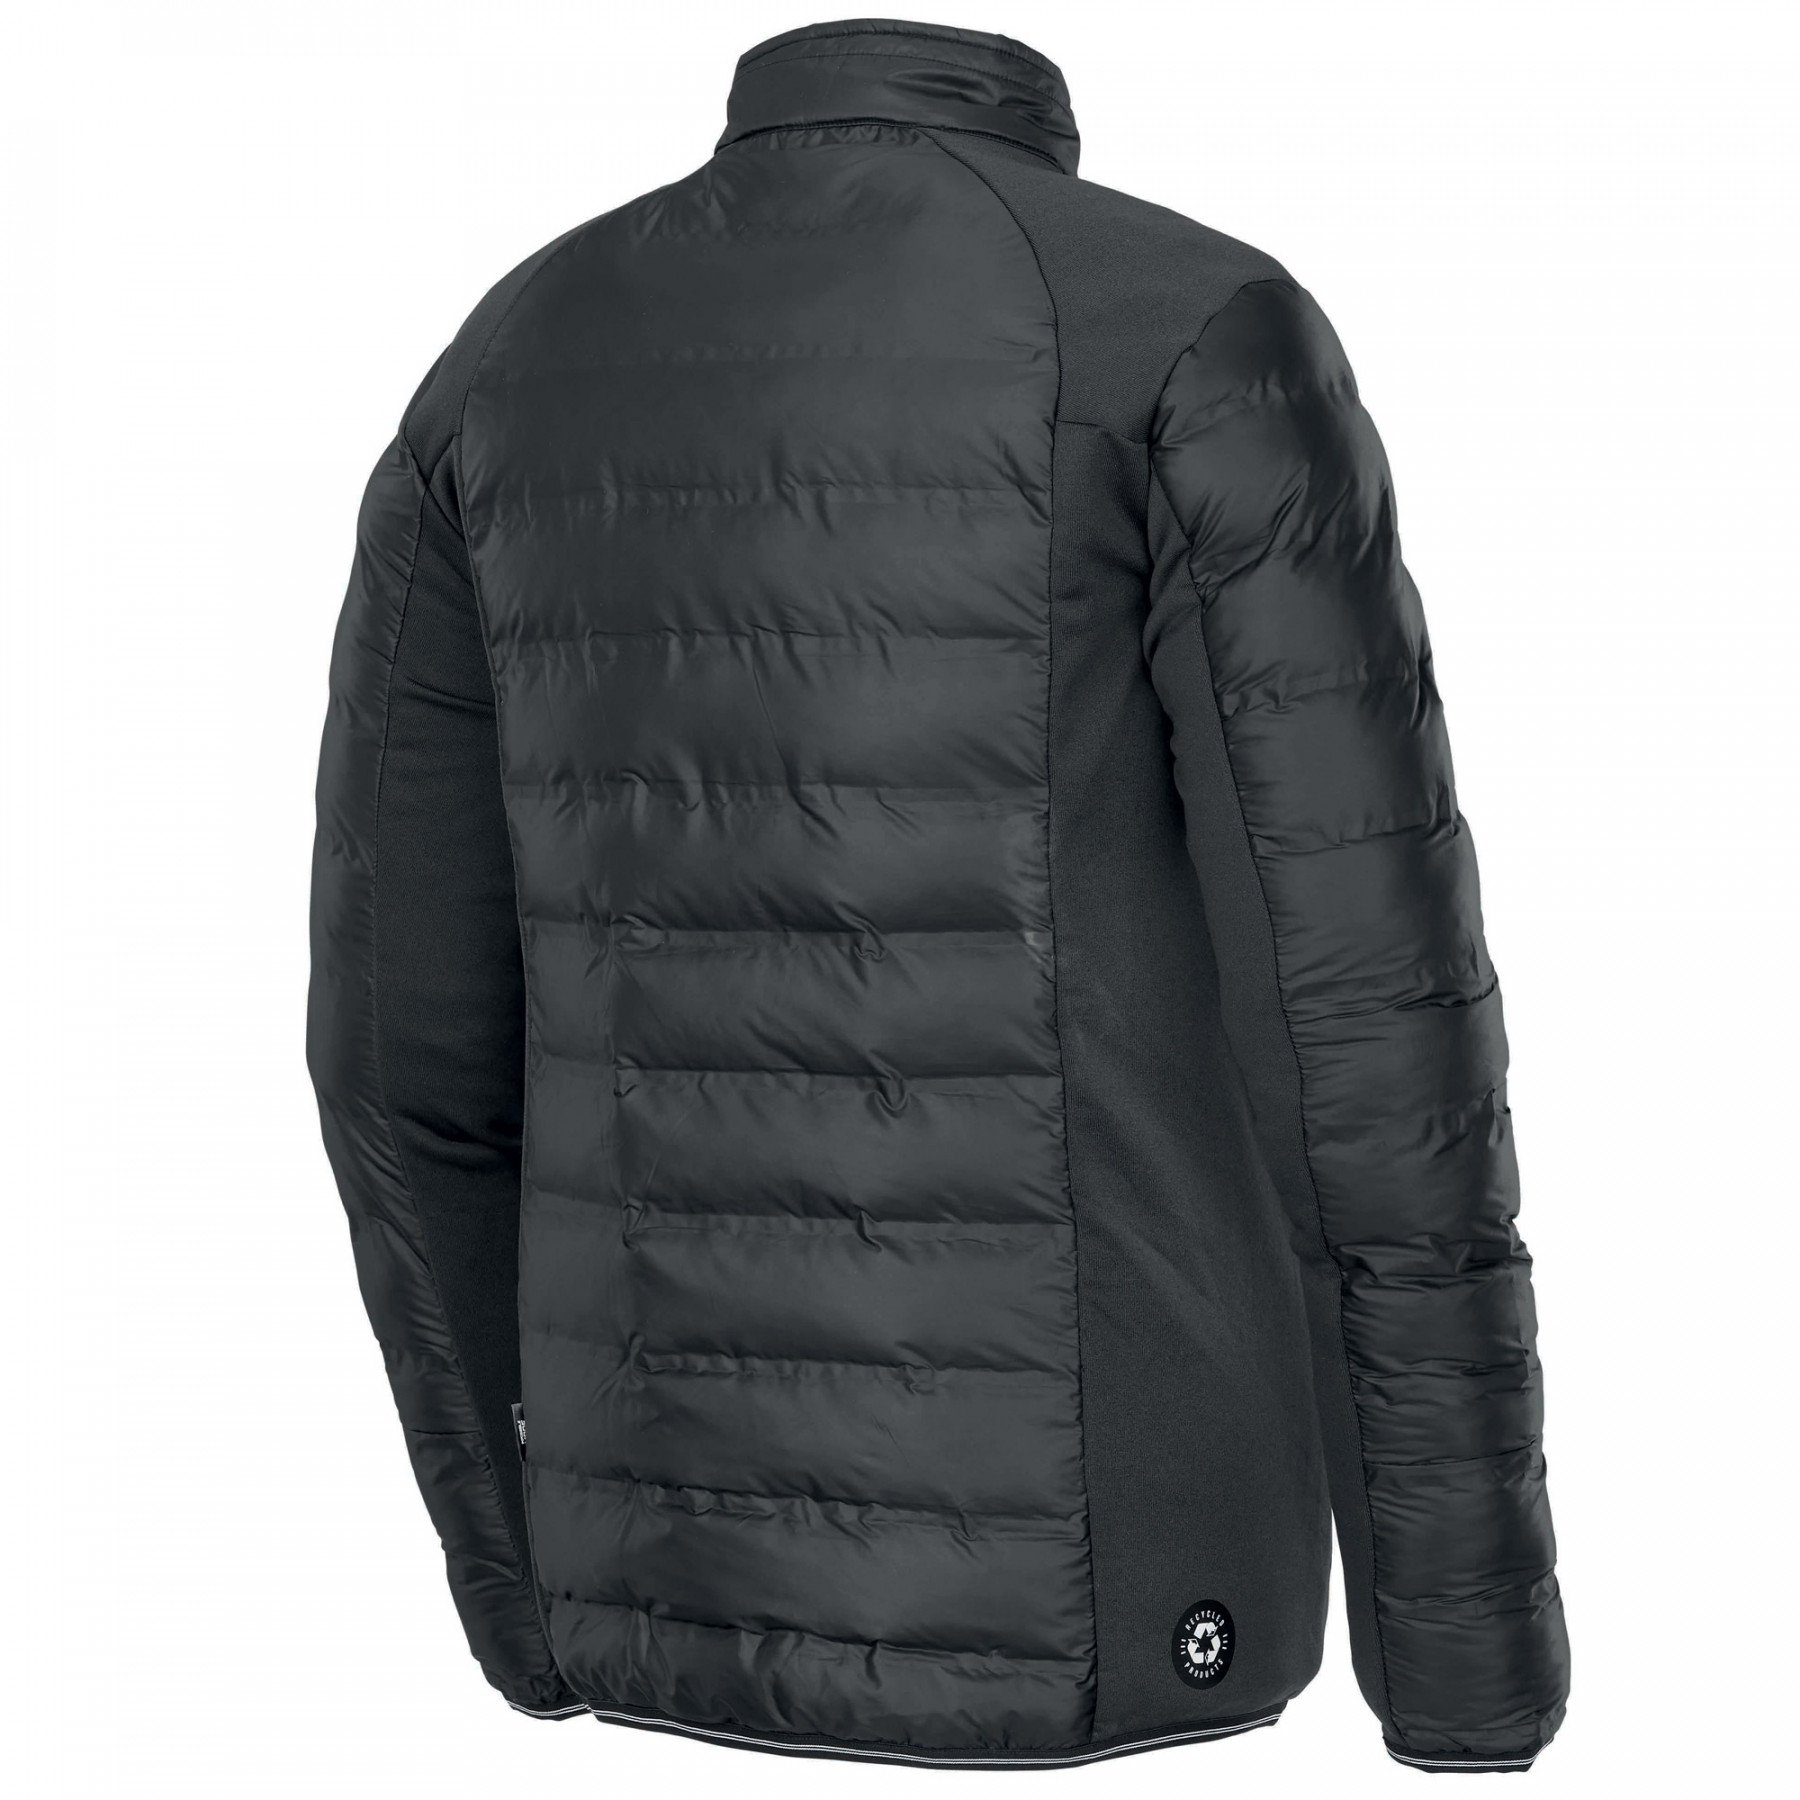 Doudoune Horse Jacket - Black 1